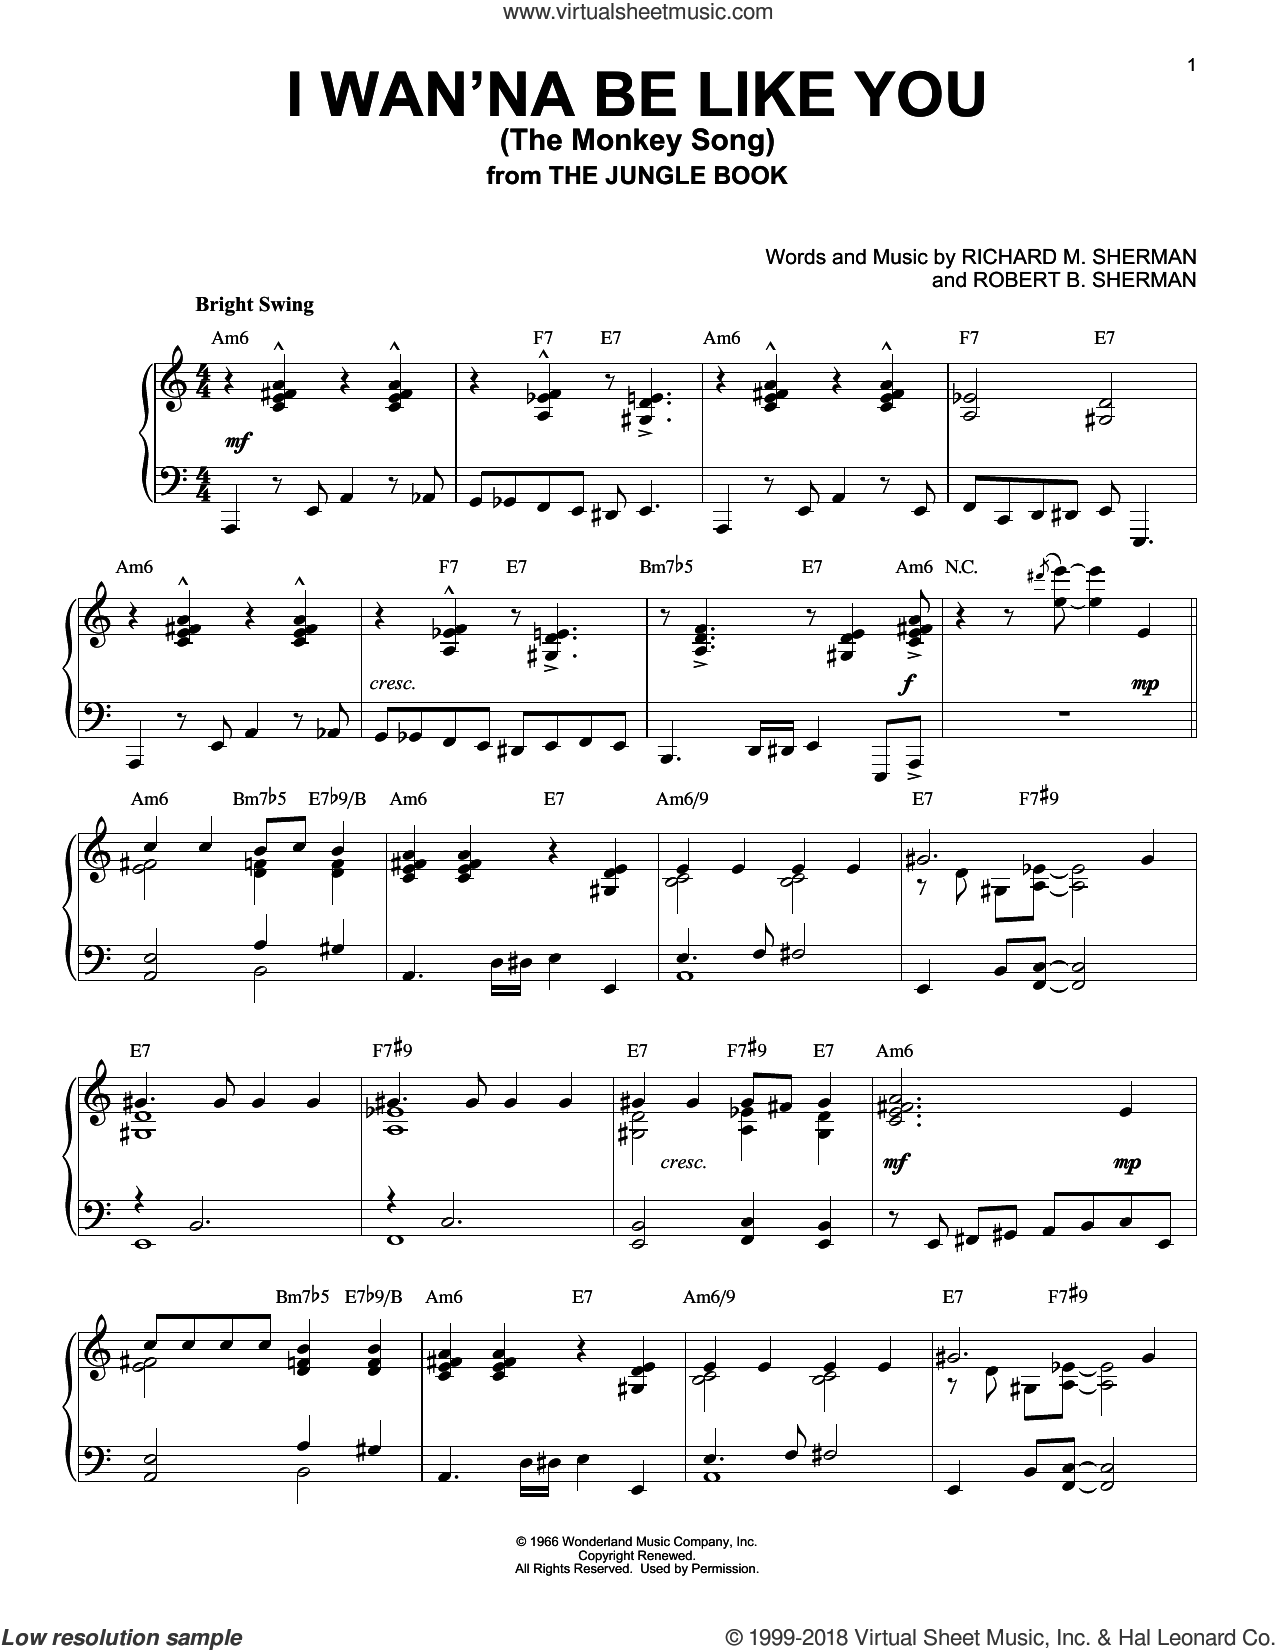 I Wan'na Be Like You (The Monkey Song) [Jazz version] (from The Jungle Book) sheet music for piano solo by Robert B. Sherman and Richard M. Sherman, intermediate skill level